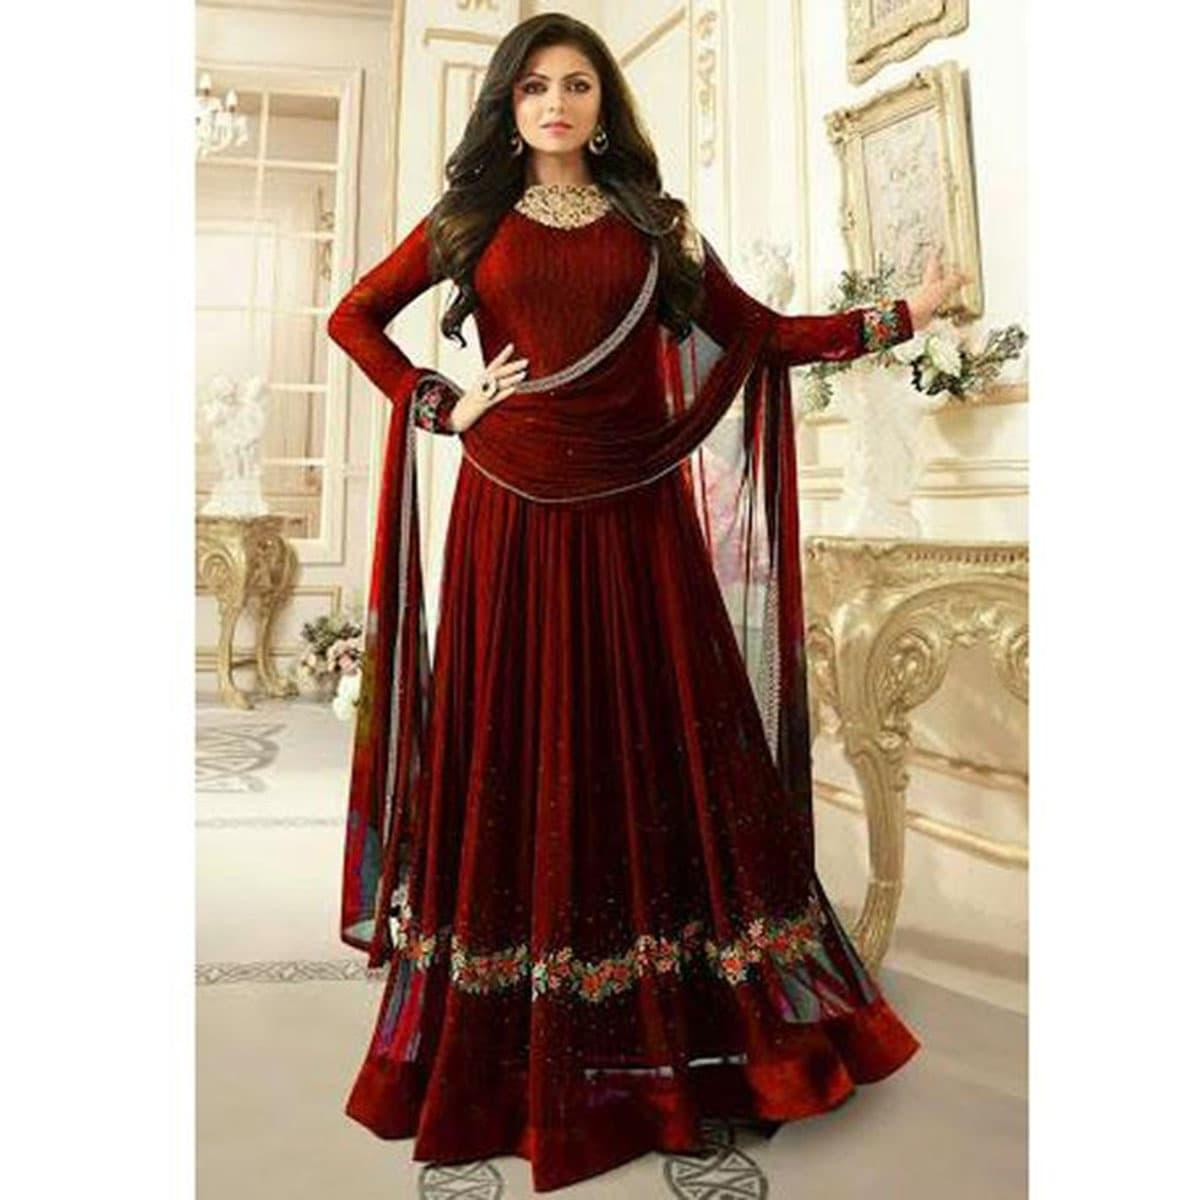 a736203d7a0 Women s Clothing Online  Buy Ladies Clothes in Bangladesh